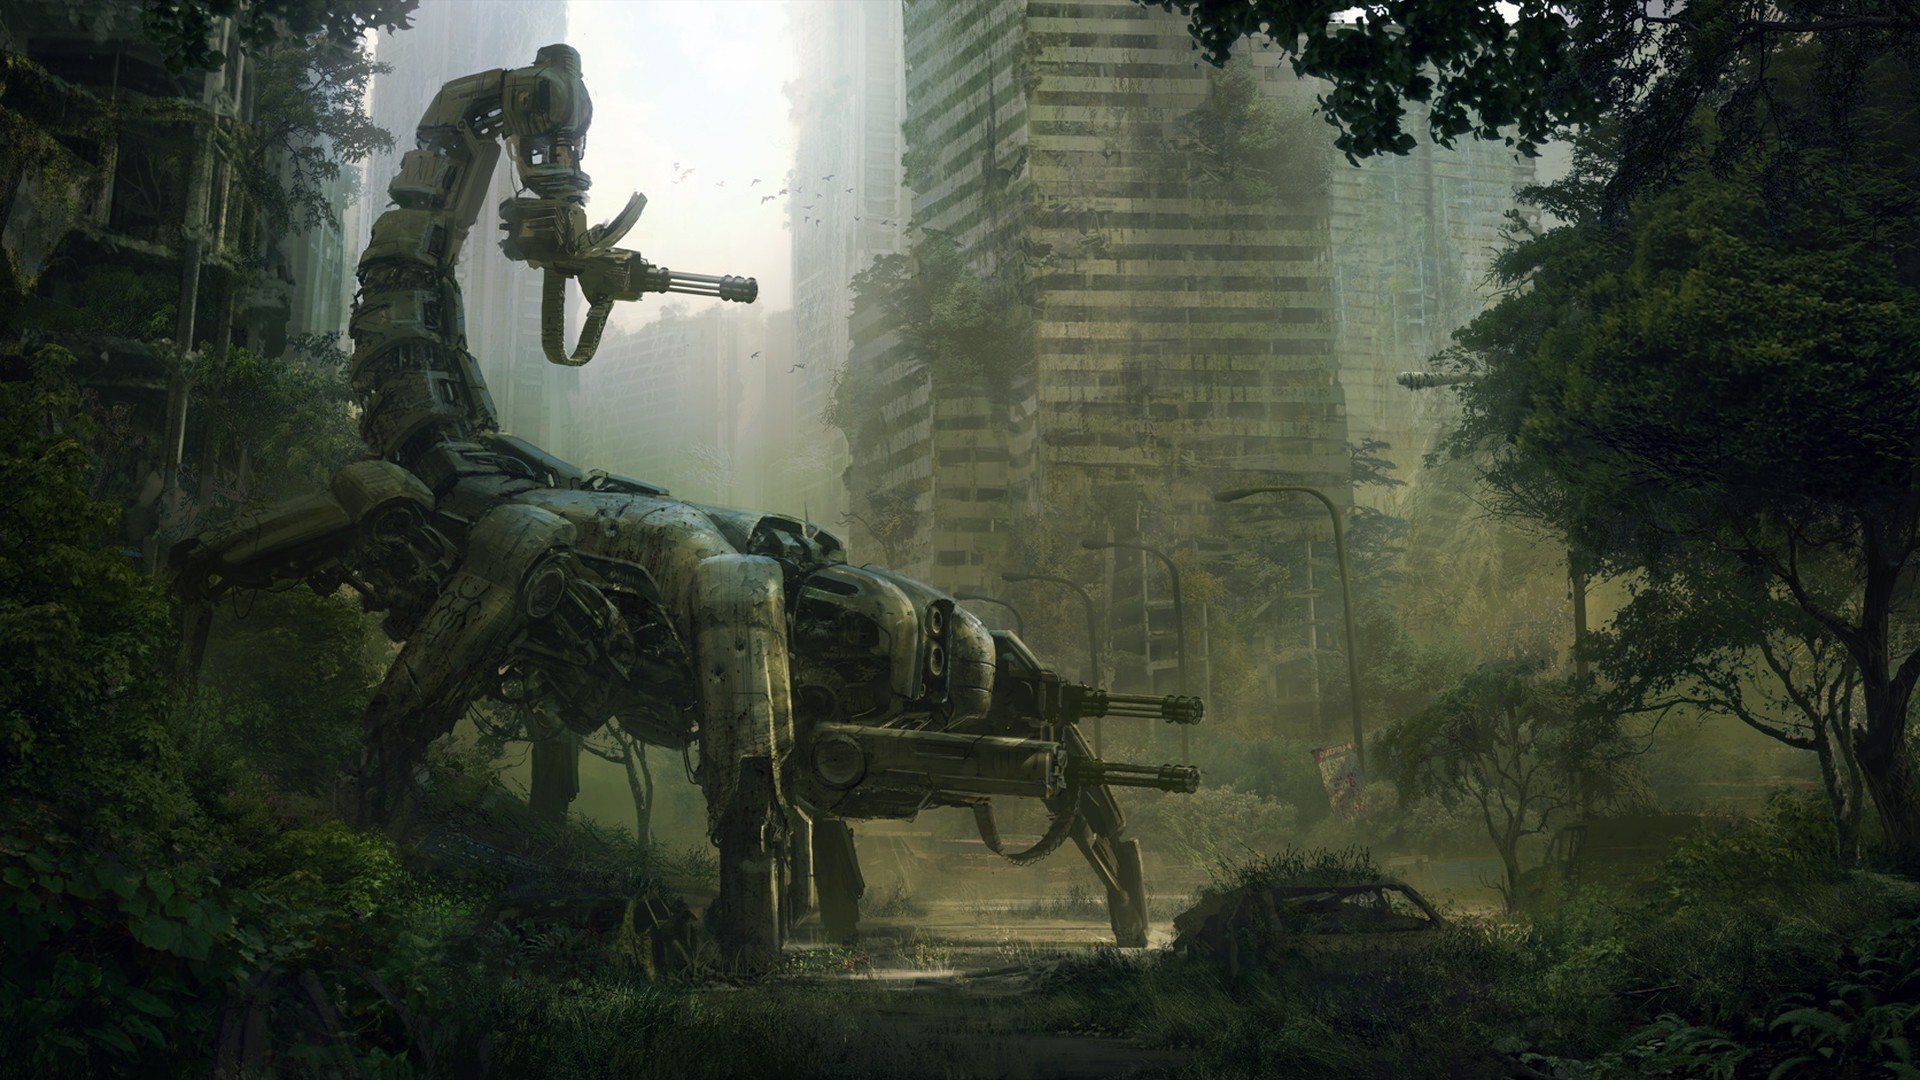 4k Fall Wallpaper For Phone Review Wasteland 2 Pc That Videogame Blog